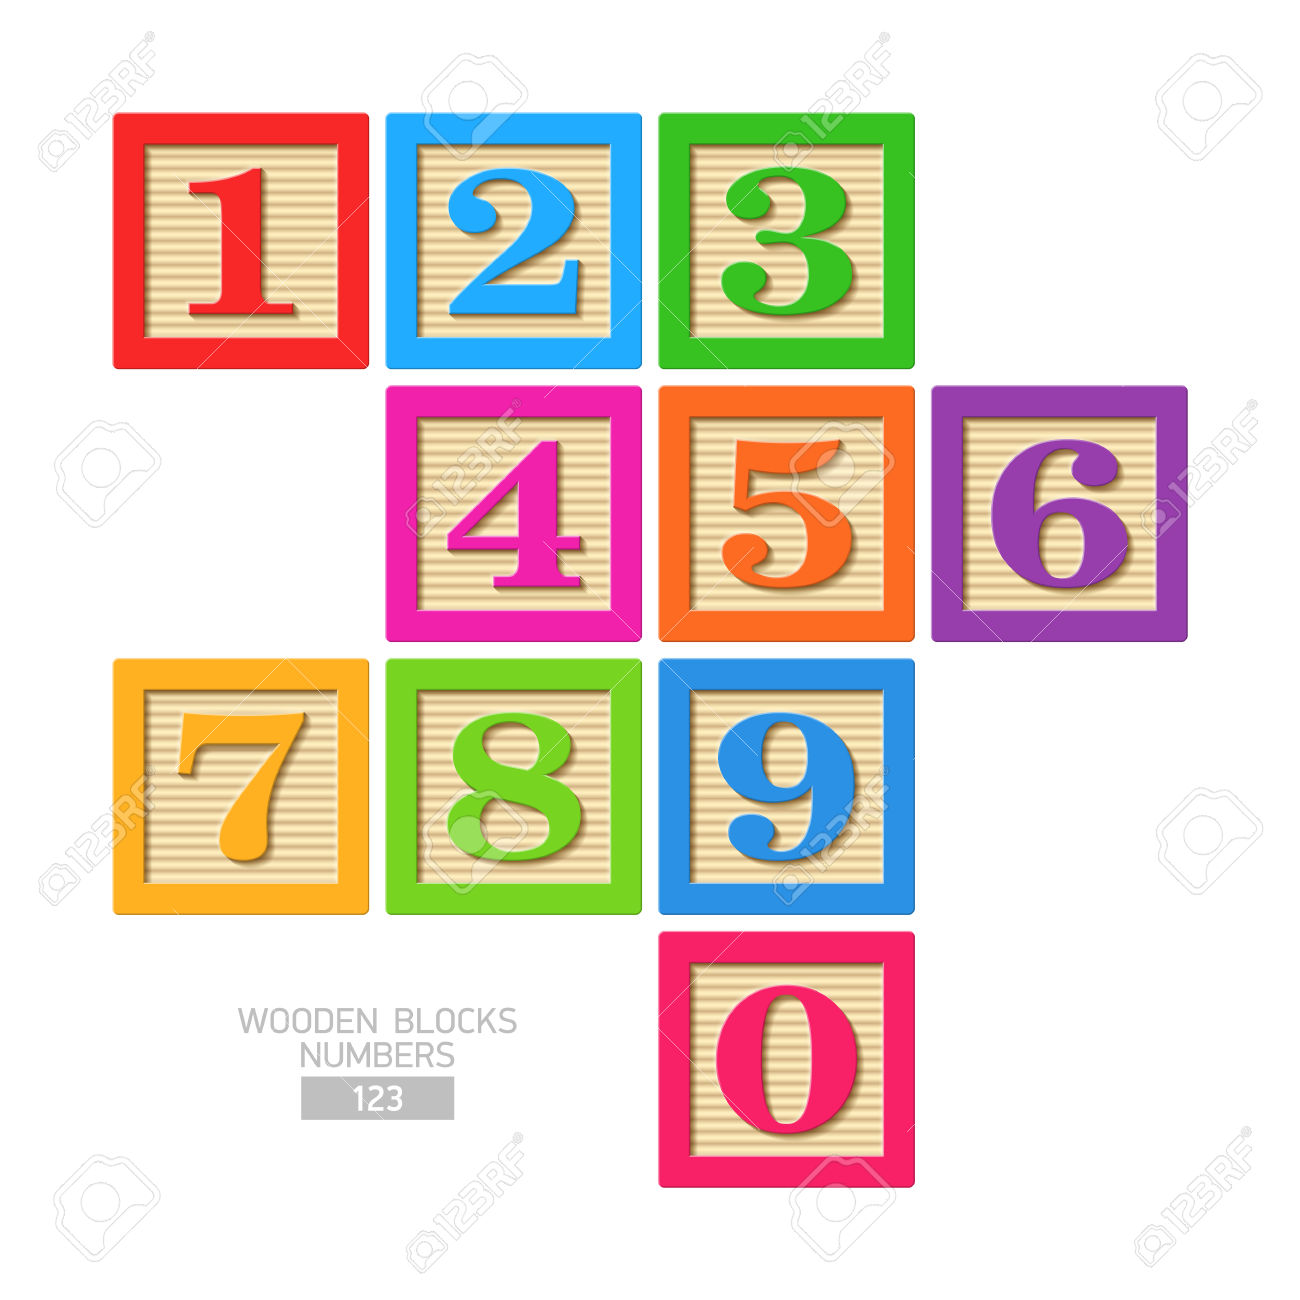 Number block clipart clip freeuse download 10,567 Wooden Block Cliparts, Stock Vector And Royalty Free Wooden ... clip freeuse download